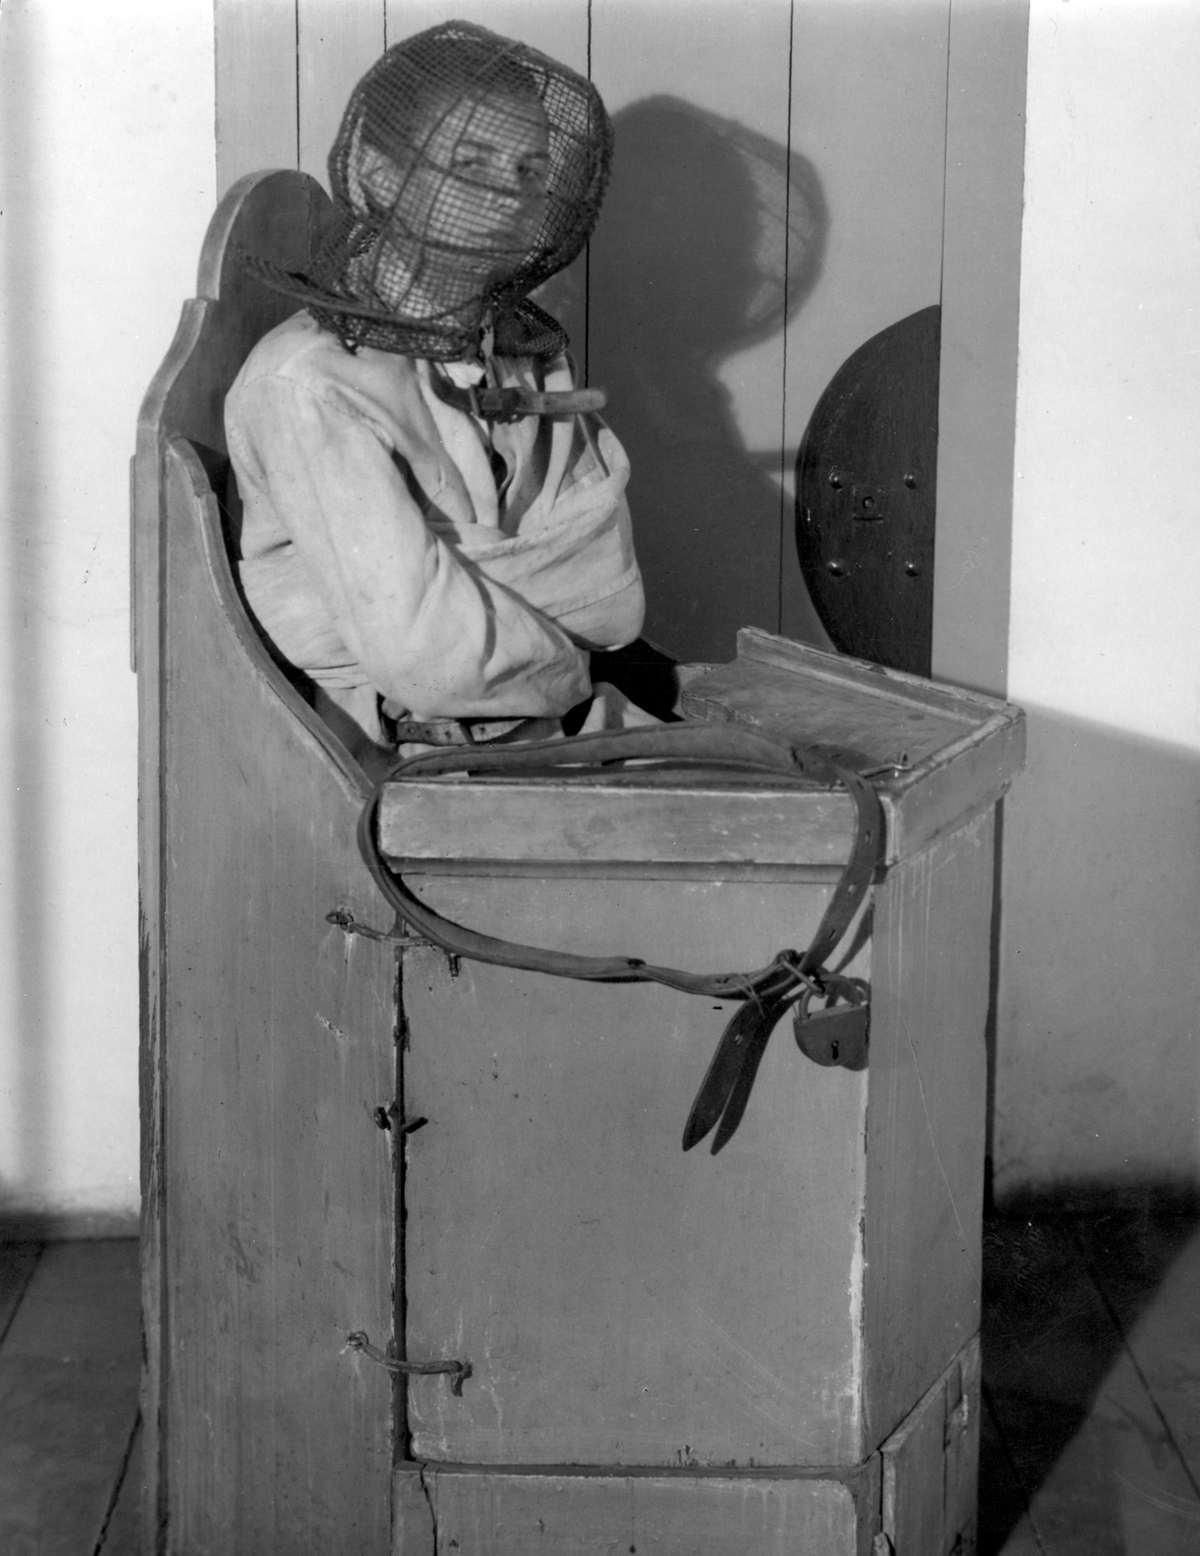 Restraint chair hospital in the restraint chair and - A Children S Chair From The Lunatic Room In A Dutch Hospital Room In 1938